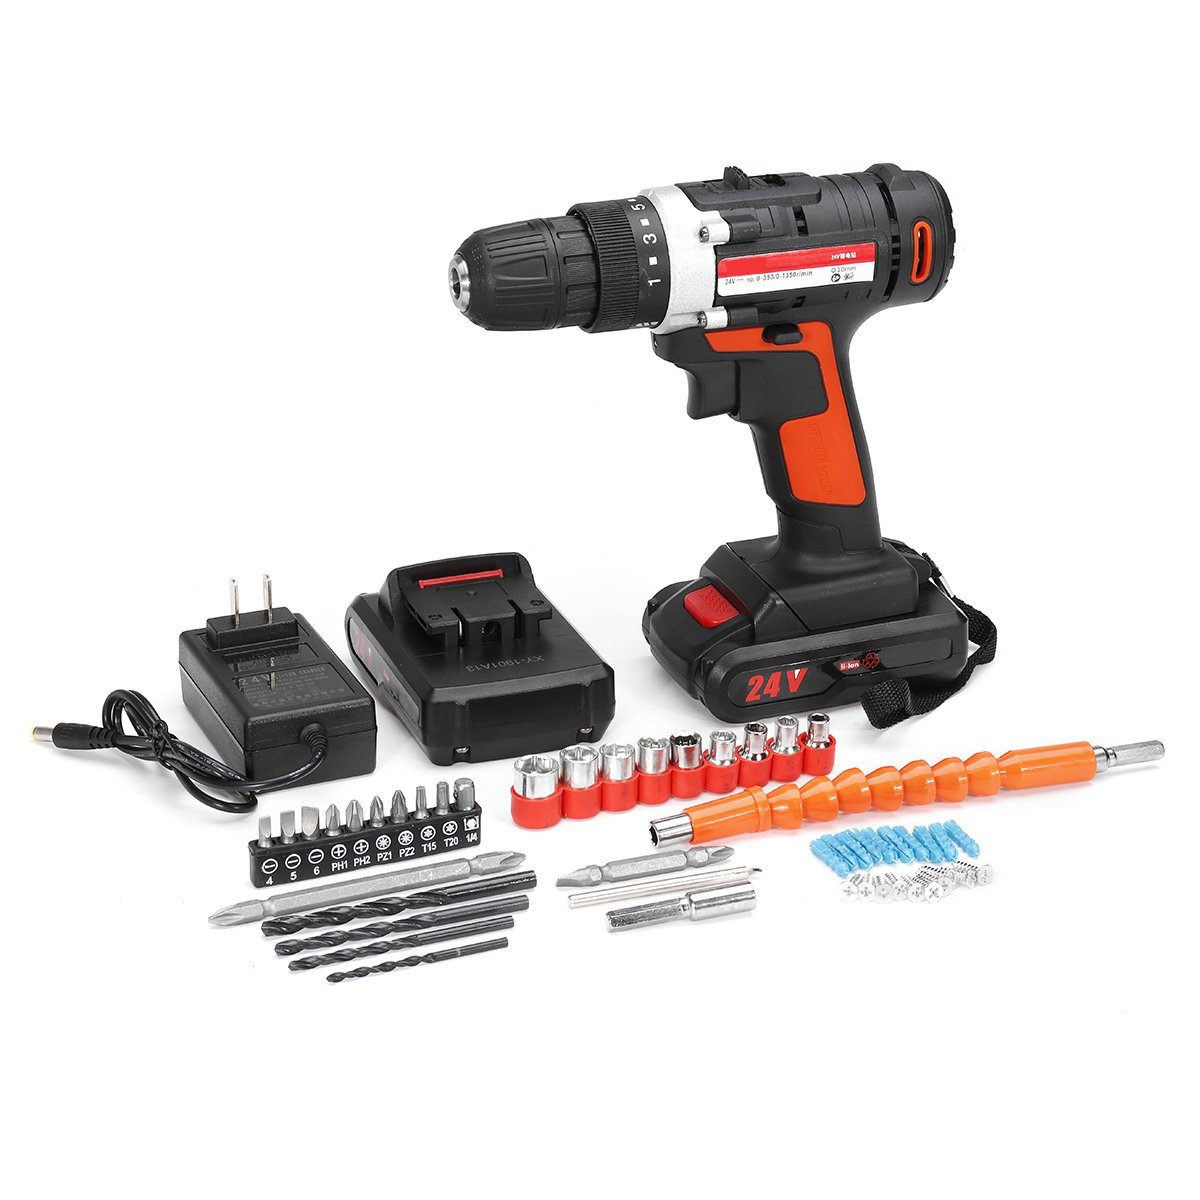 24V Cordless Drill Rechargeable Electric Screwdriver Multifunction Power Tools 2 Li-Ion Battery 2 Speed 3/8 Chuck LED Lighting24V Cordless Drill Rechargeable Electric Screwdriver Multifunction Power Tools 2 Li-Ion Battery 2 Speed 3/8 Chuck LED Lighting